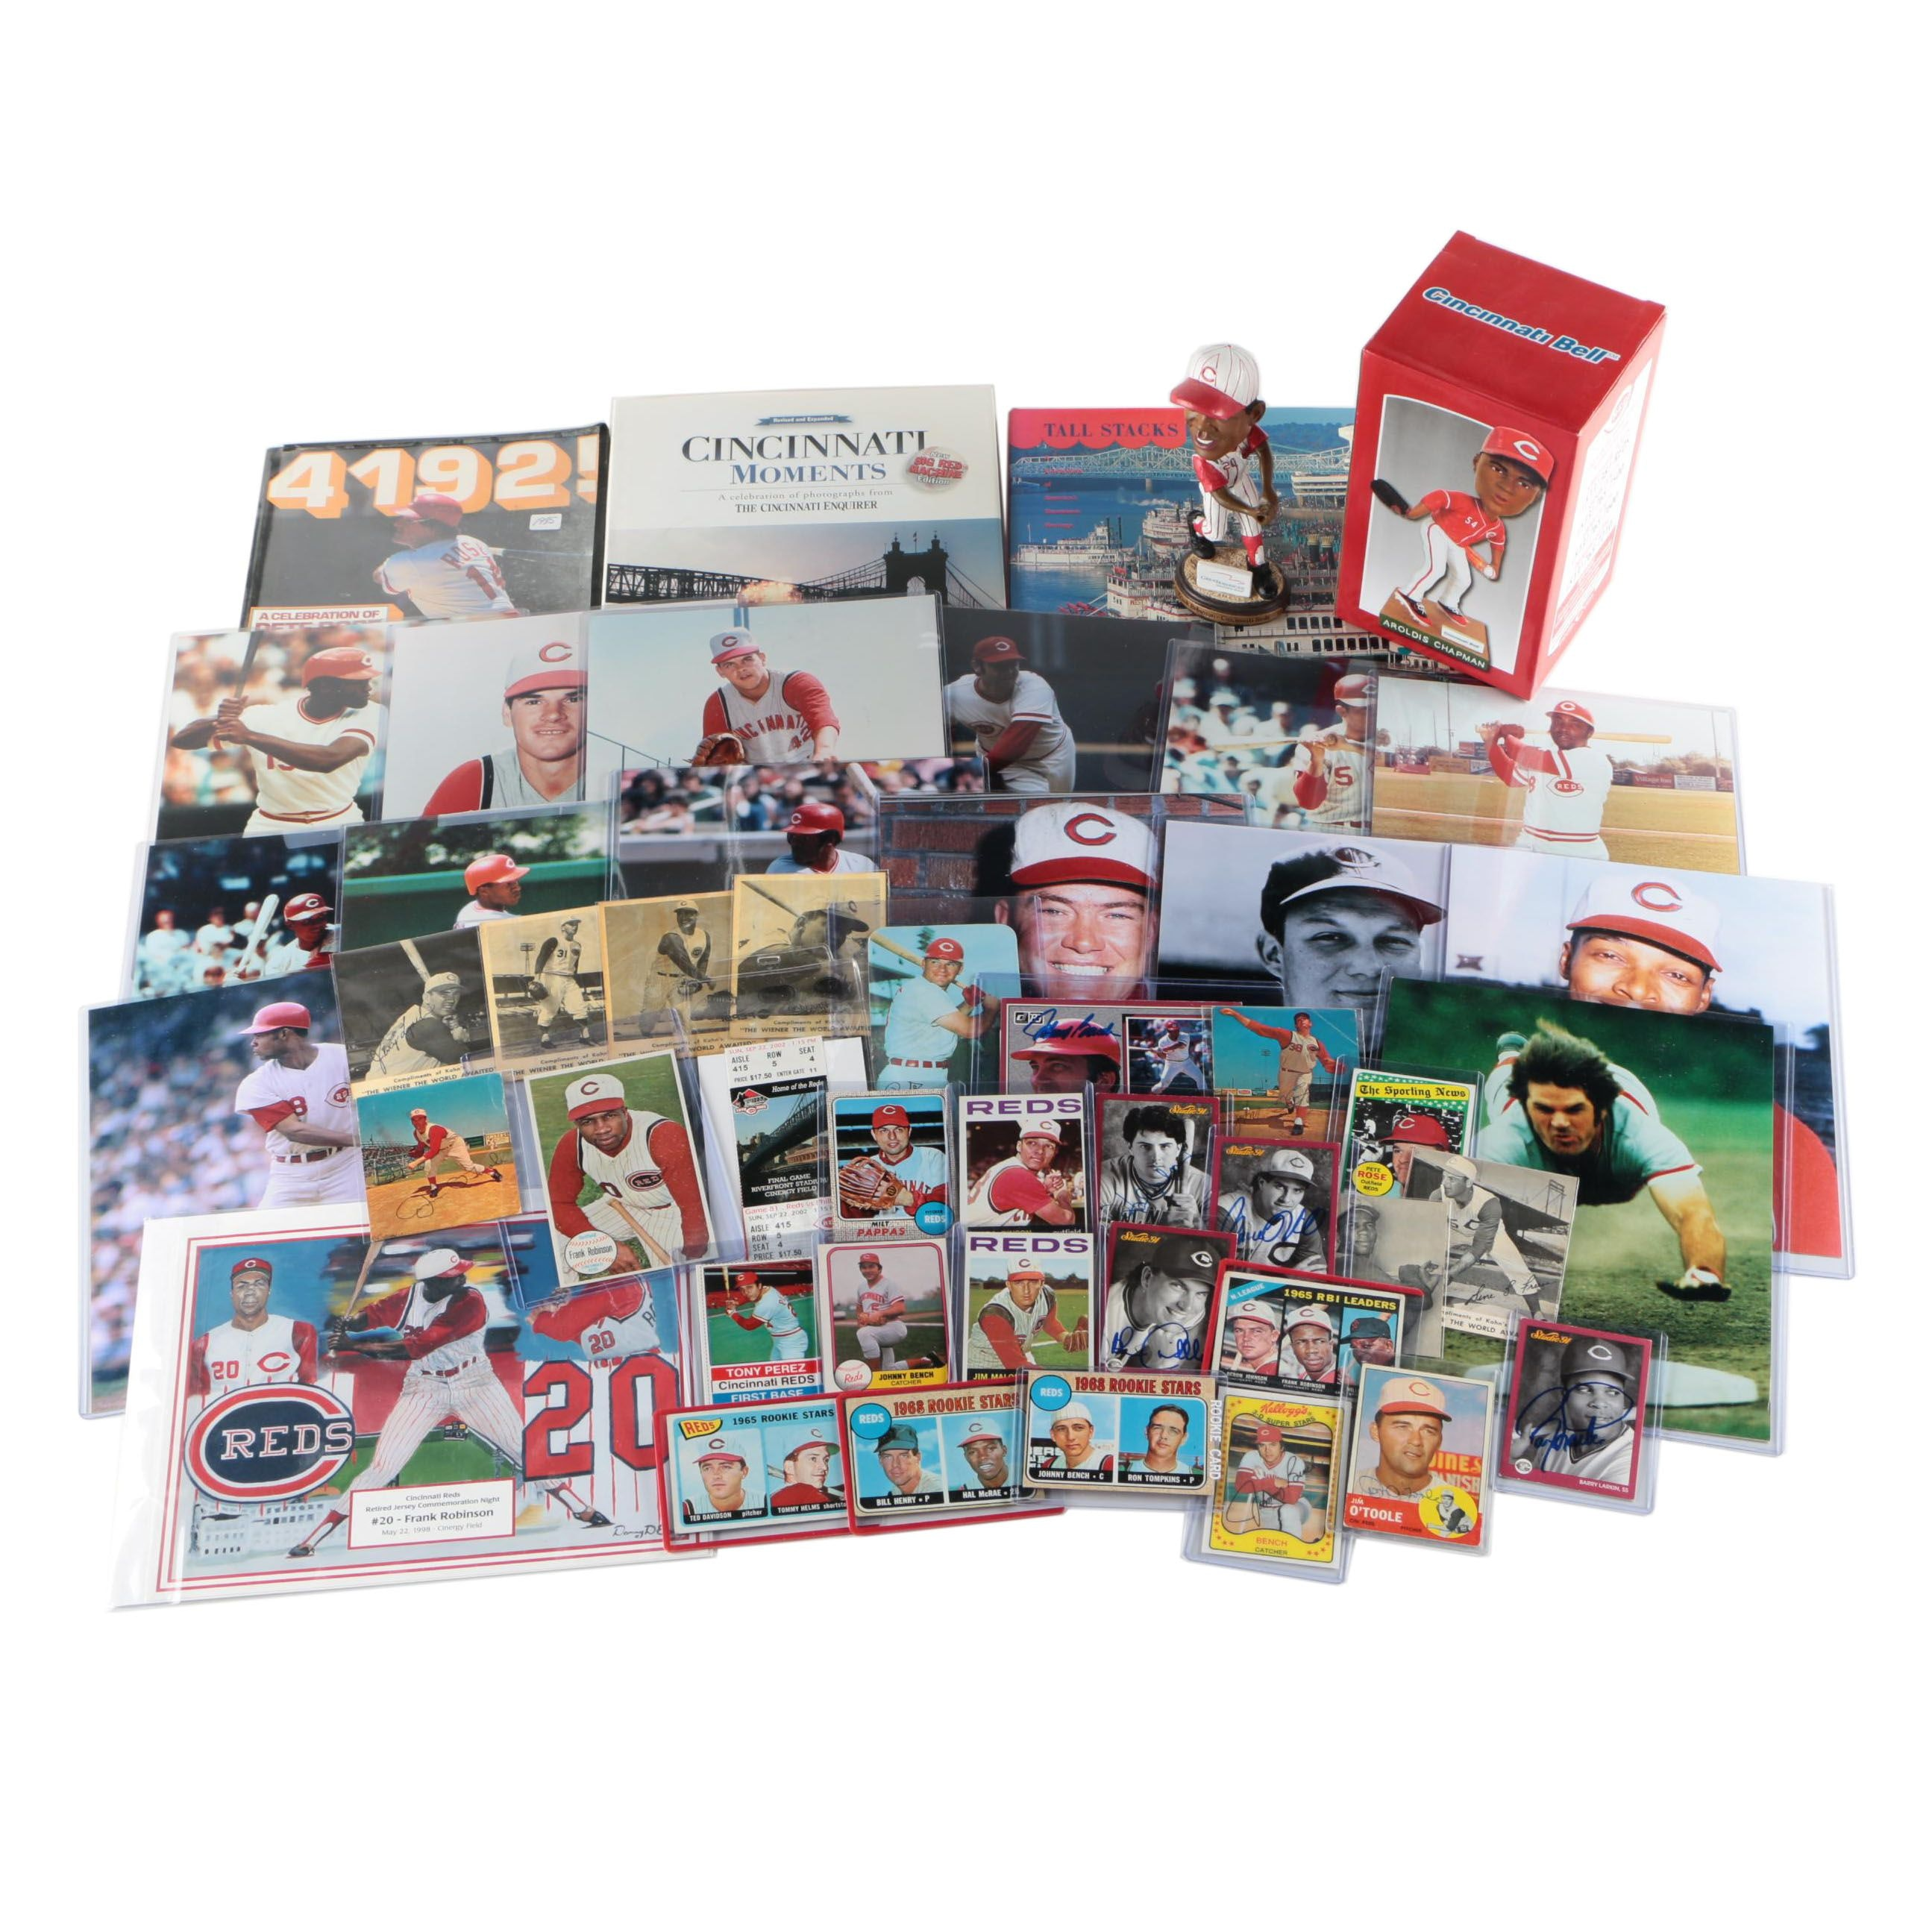 Cincinnati Reds Vintage Collection Including Autographs and Rookie Cards